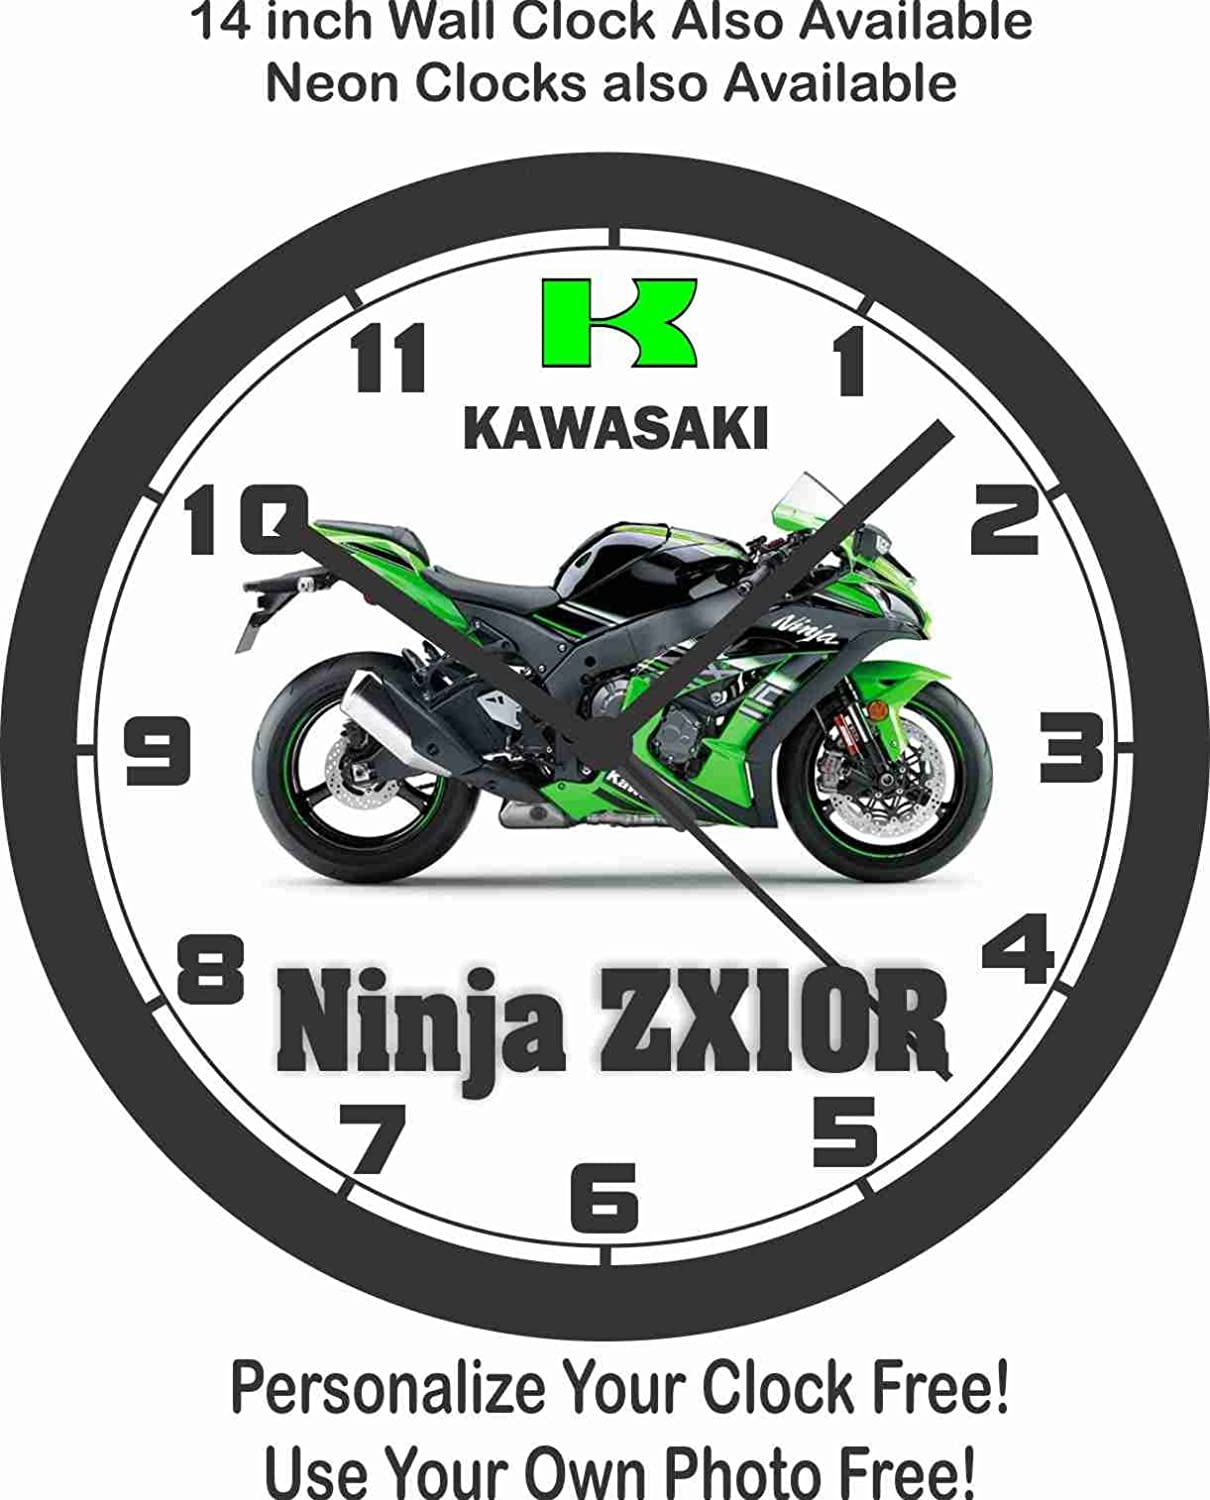 2016 KAWASAKI NINJA 10R KRT EDITION WALL CLOCK-FREE USA SHIP